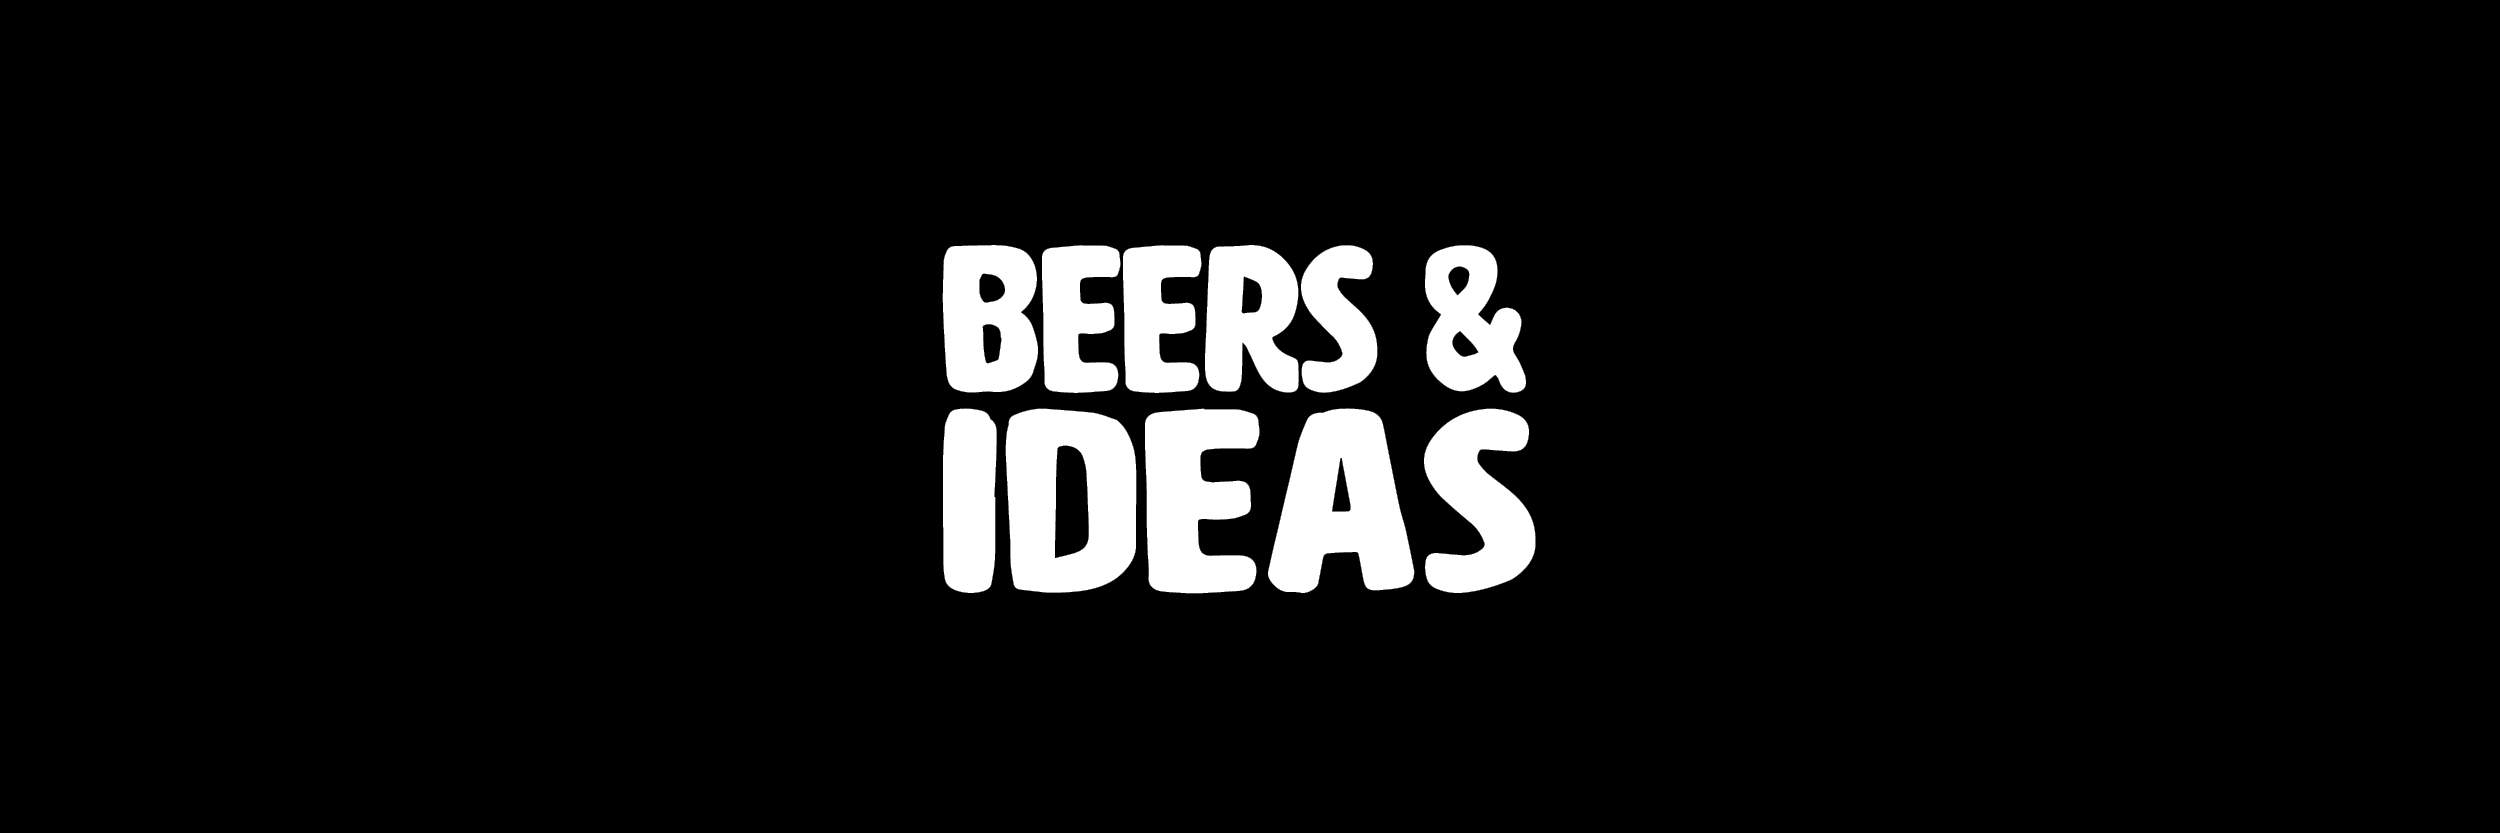 website header_Beers and Ideas.jpg